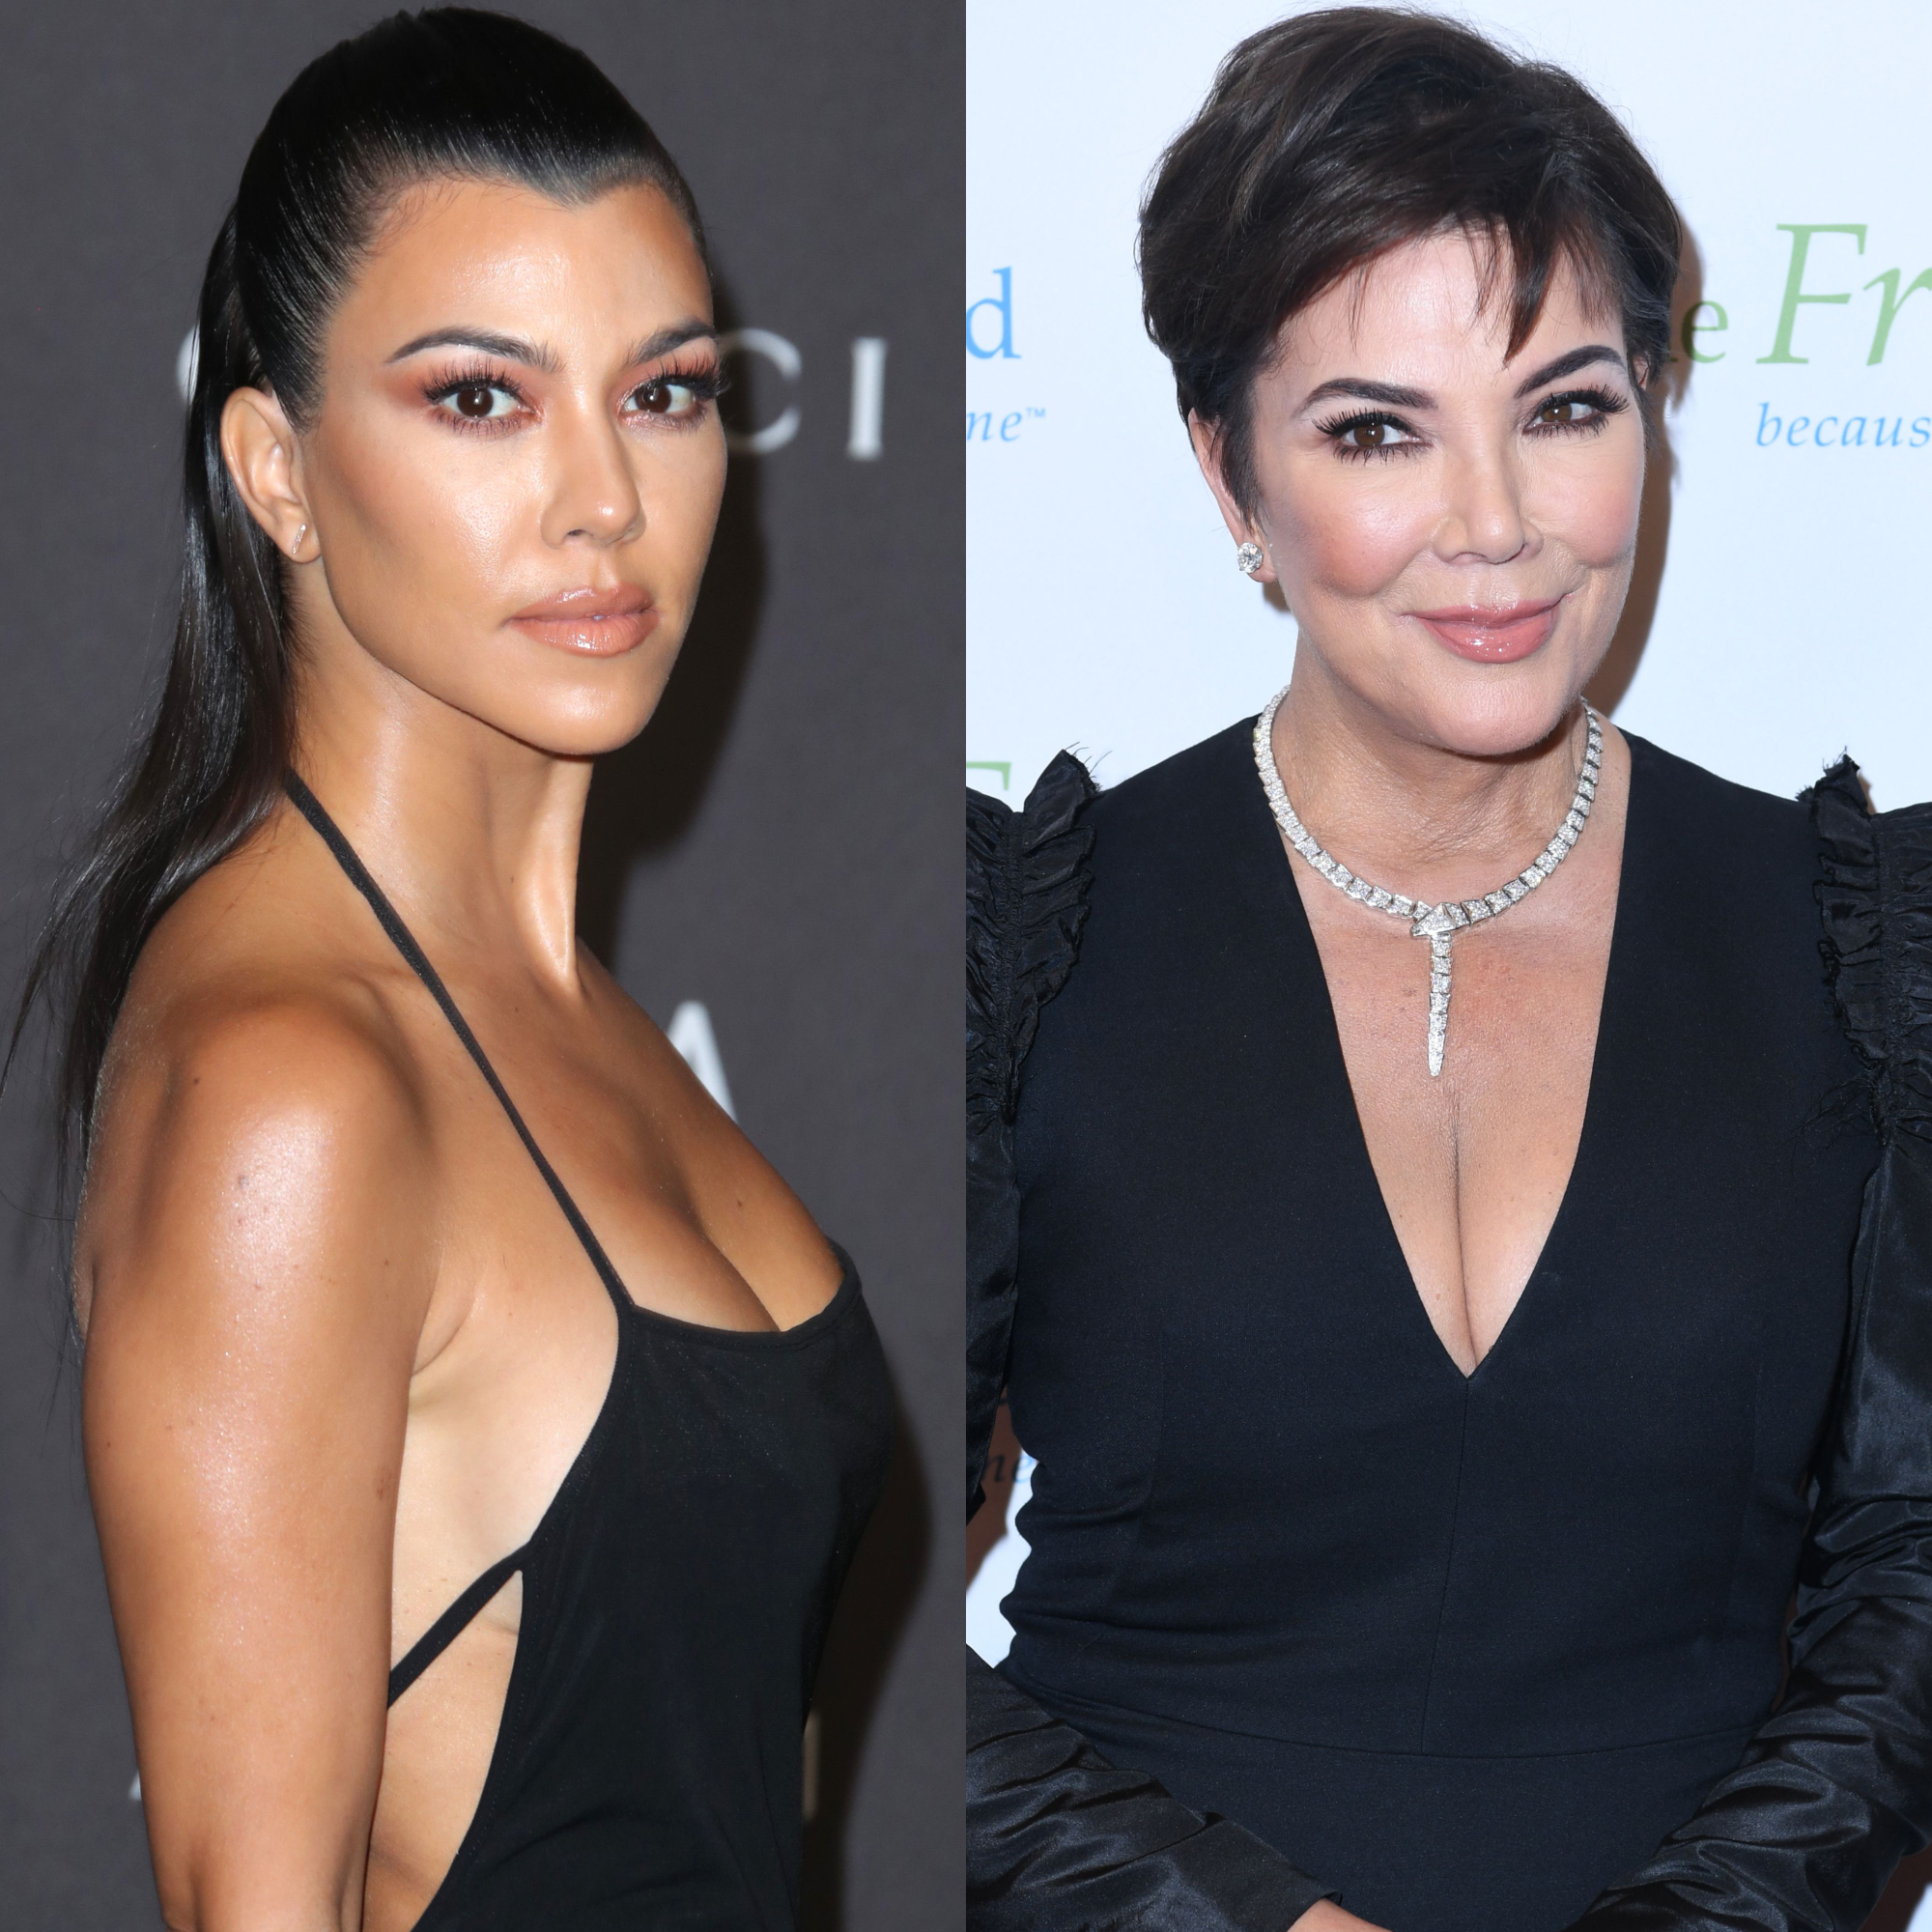 kuwtk-kris-jenner-and-kourtney-kardashian-sued-for-harassment-by-their-former-security-guard-attorney-claps-back